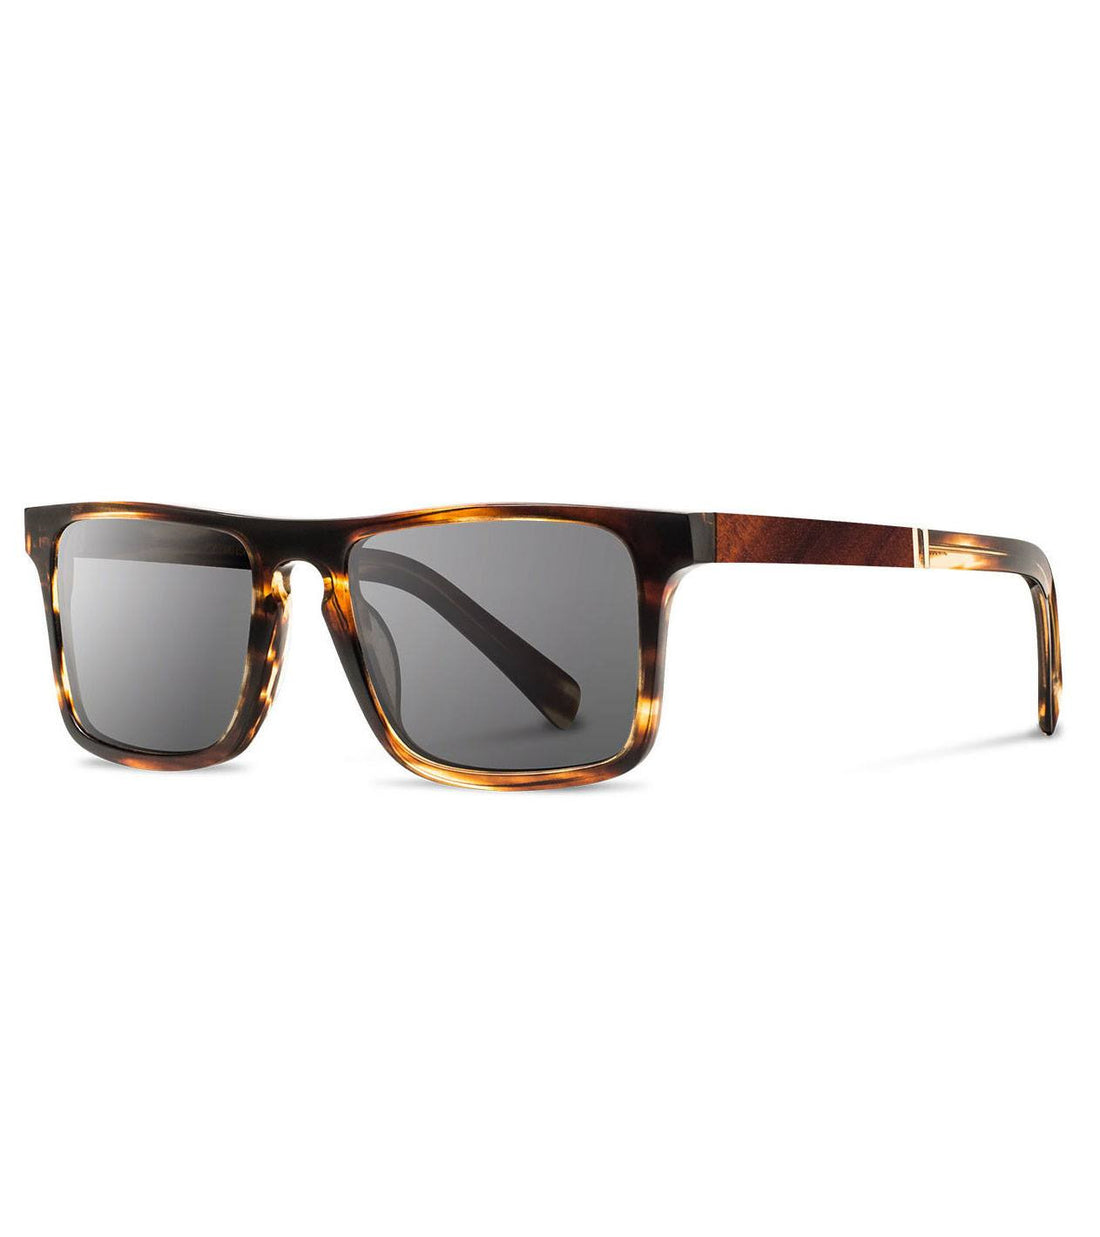 Shwood Govy 2 - Accessories: Eyewear - Iron and Resin